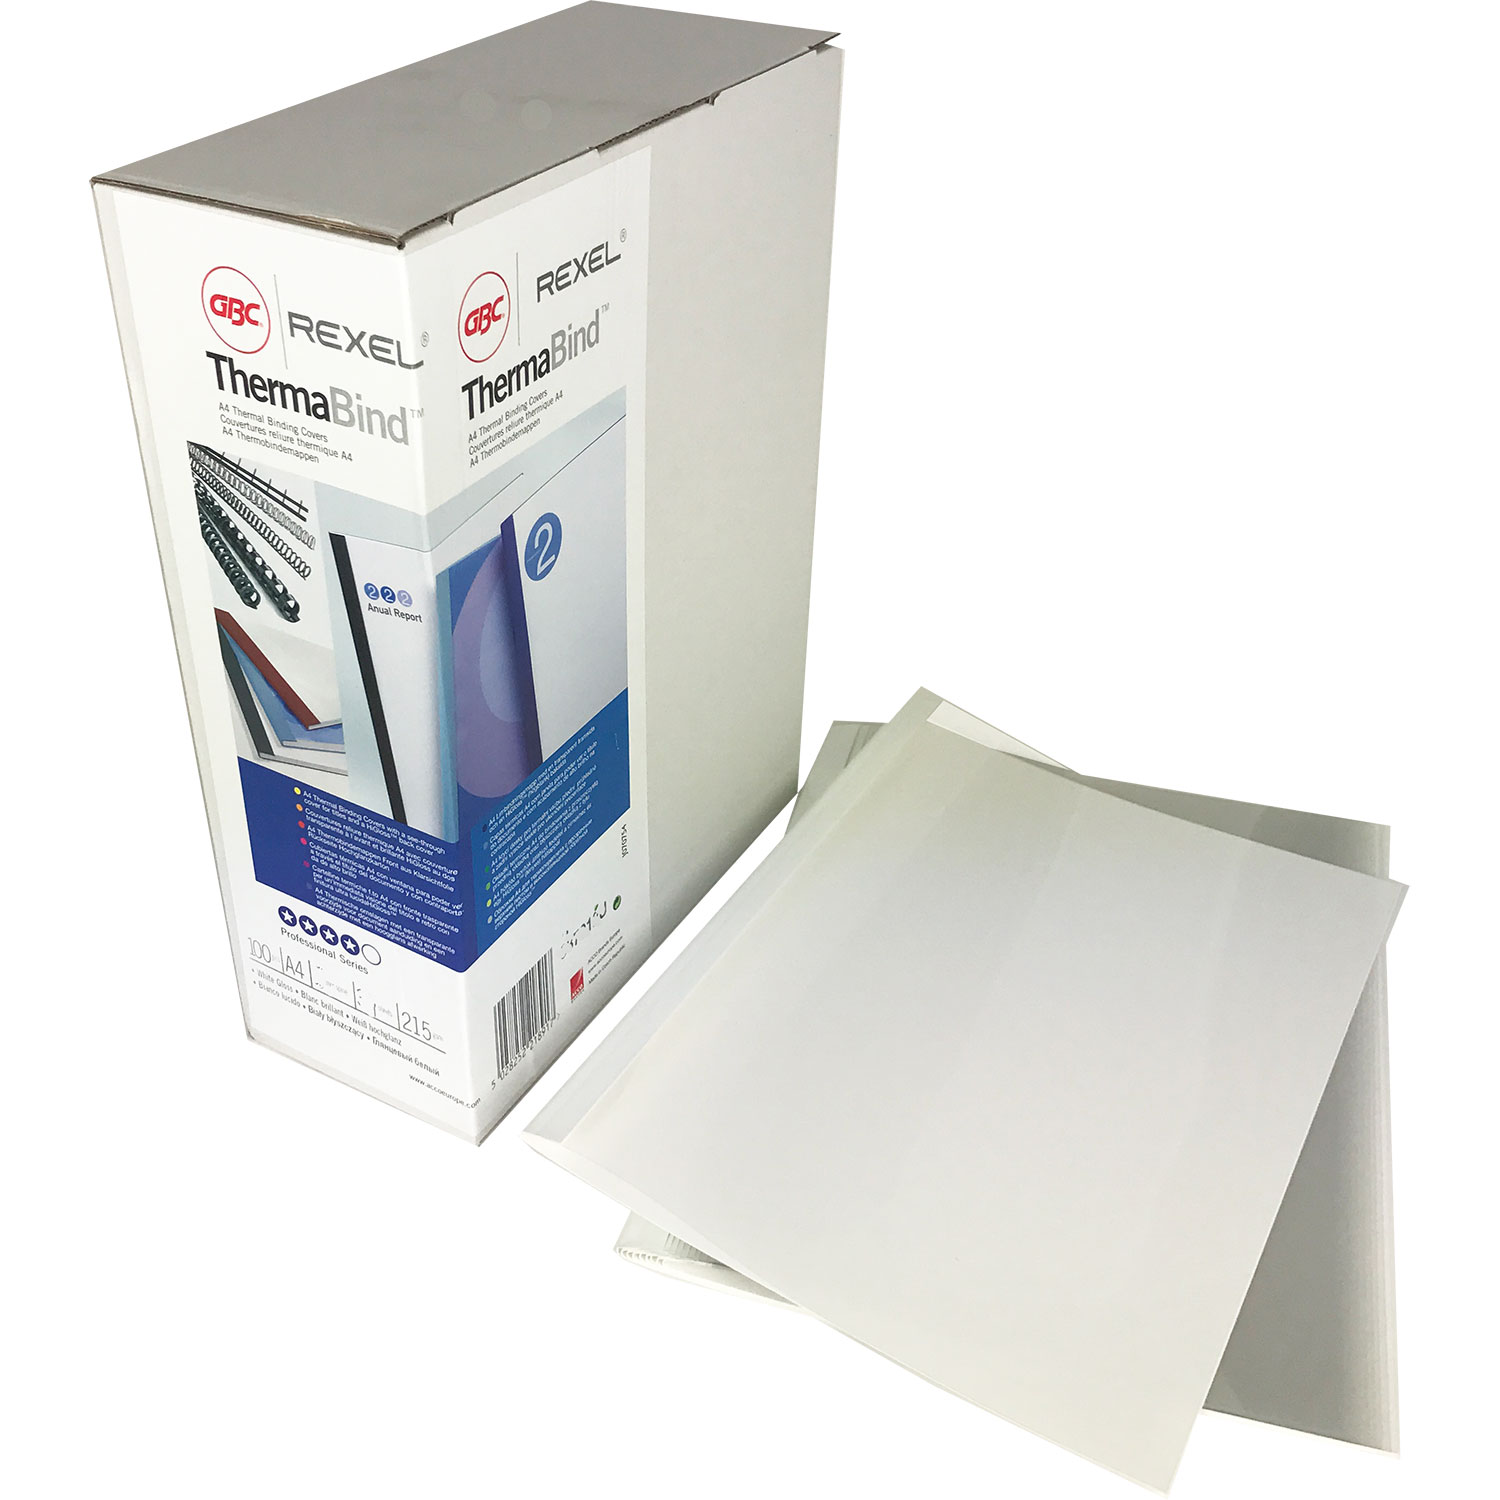 GBC 3mm White Gloss Thermal Binding Covers 387012U (100)